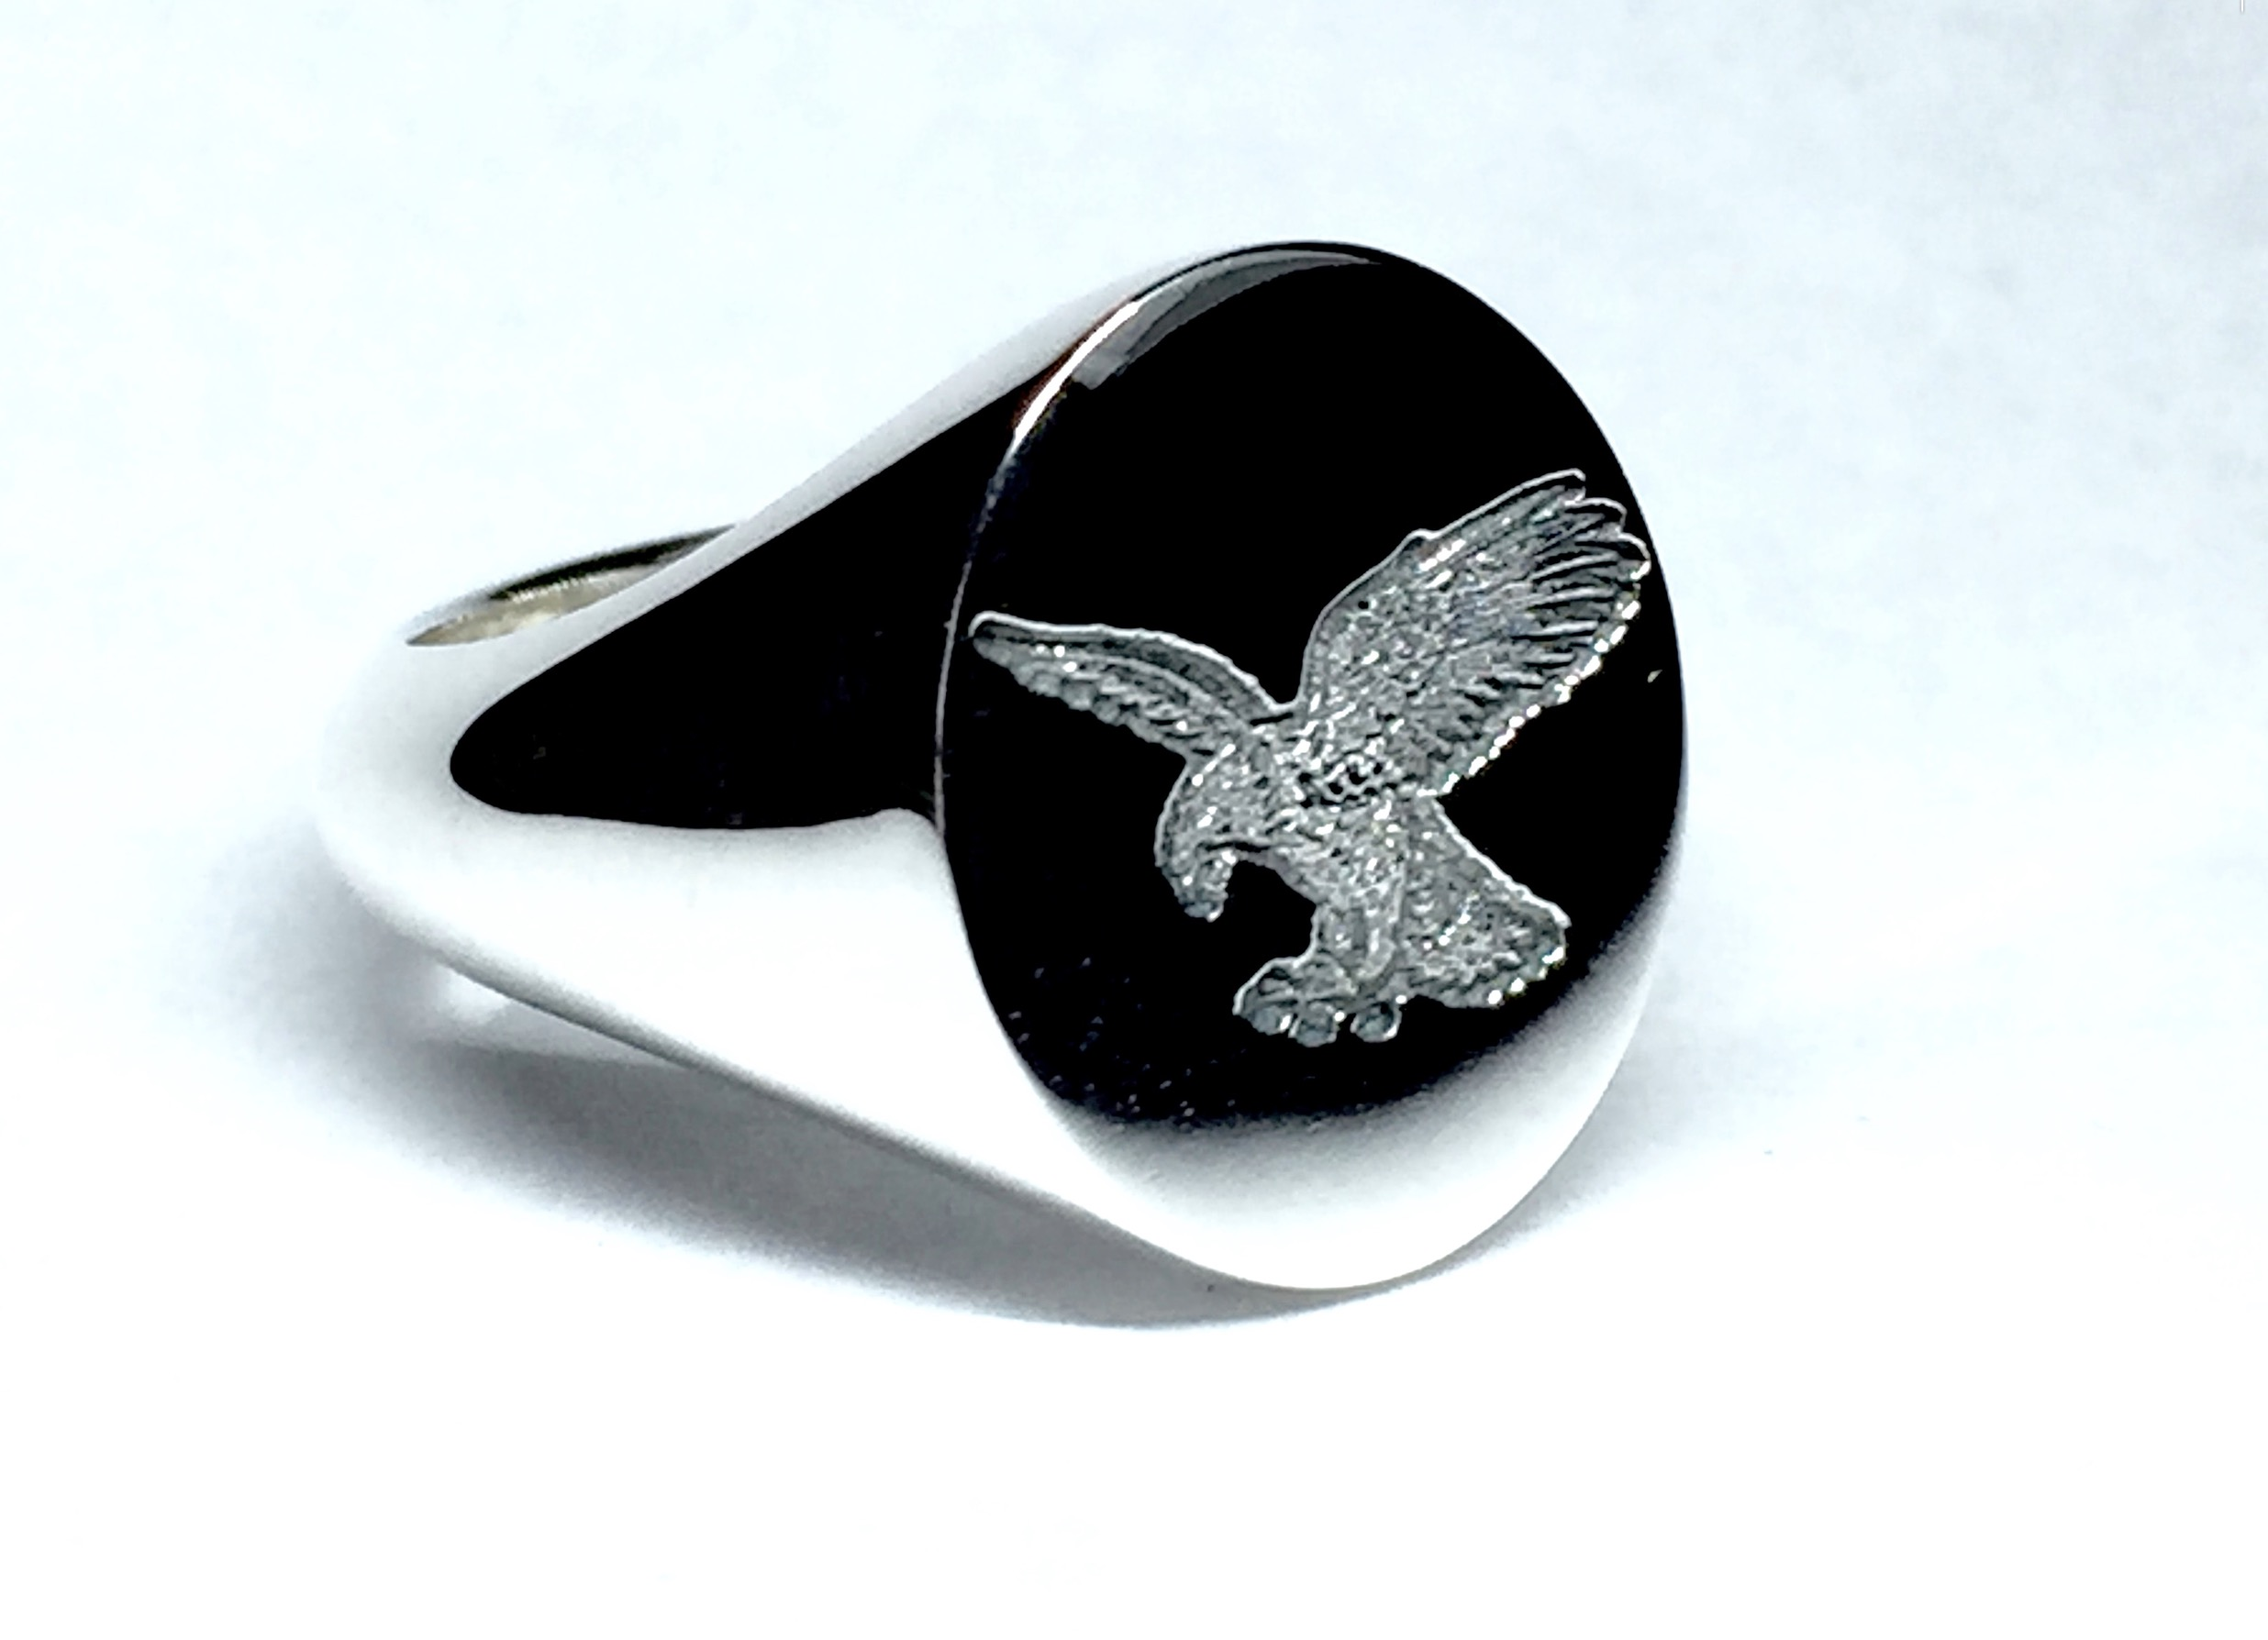 This ring was cast with the eagle added by our cad designers, no hand carving required on this one!